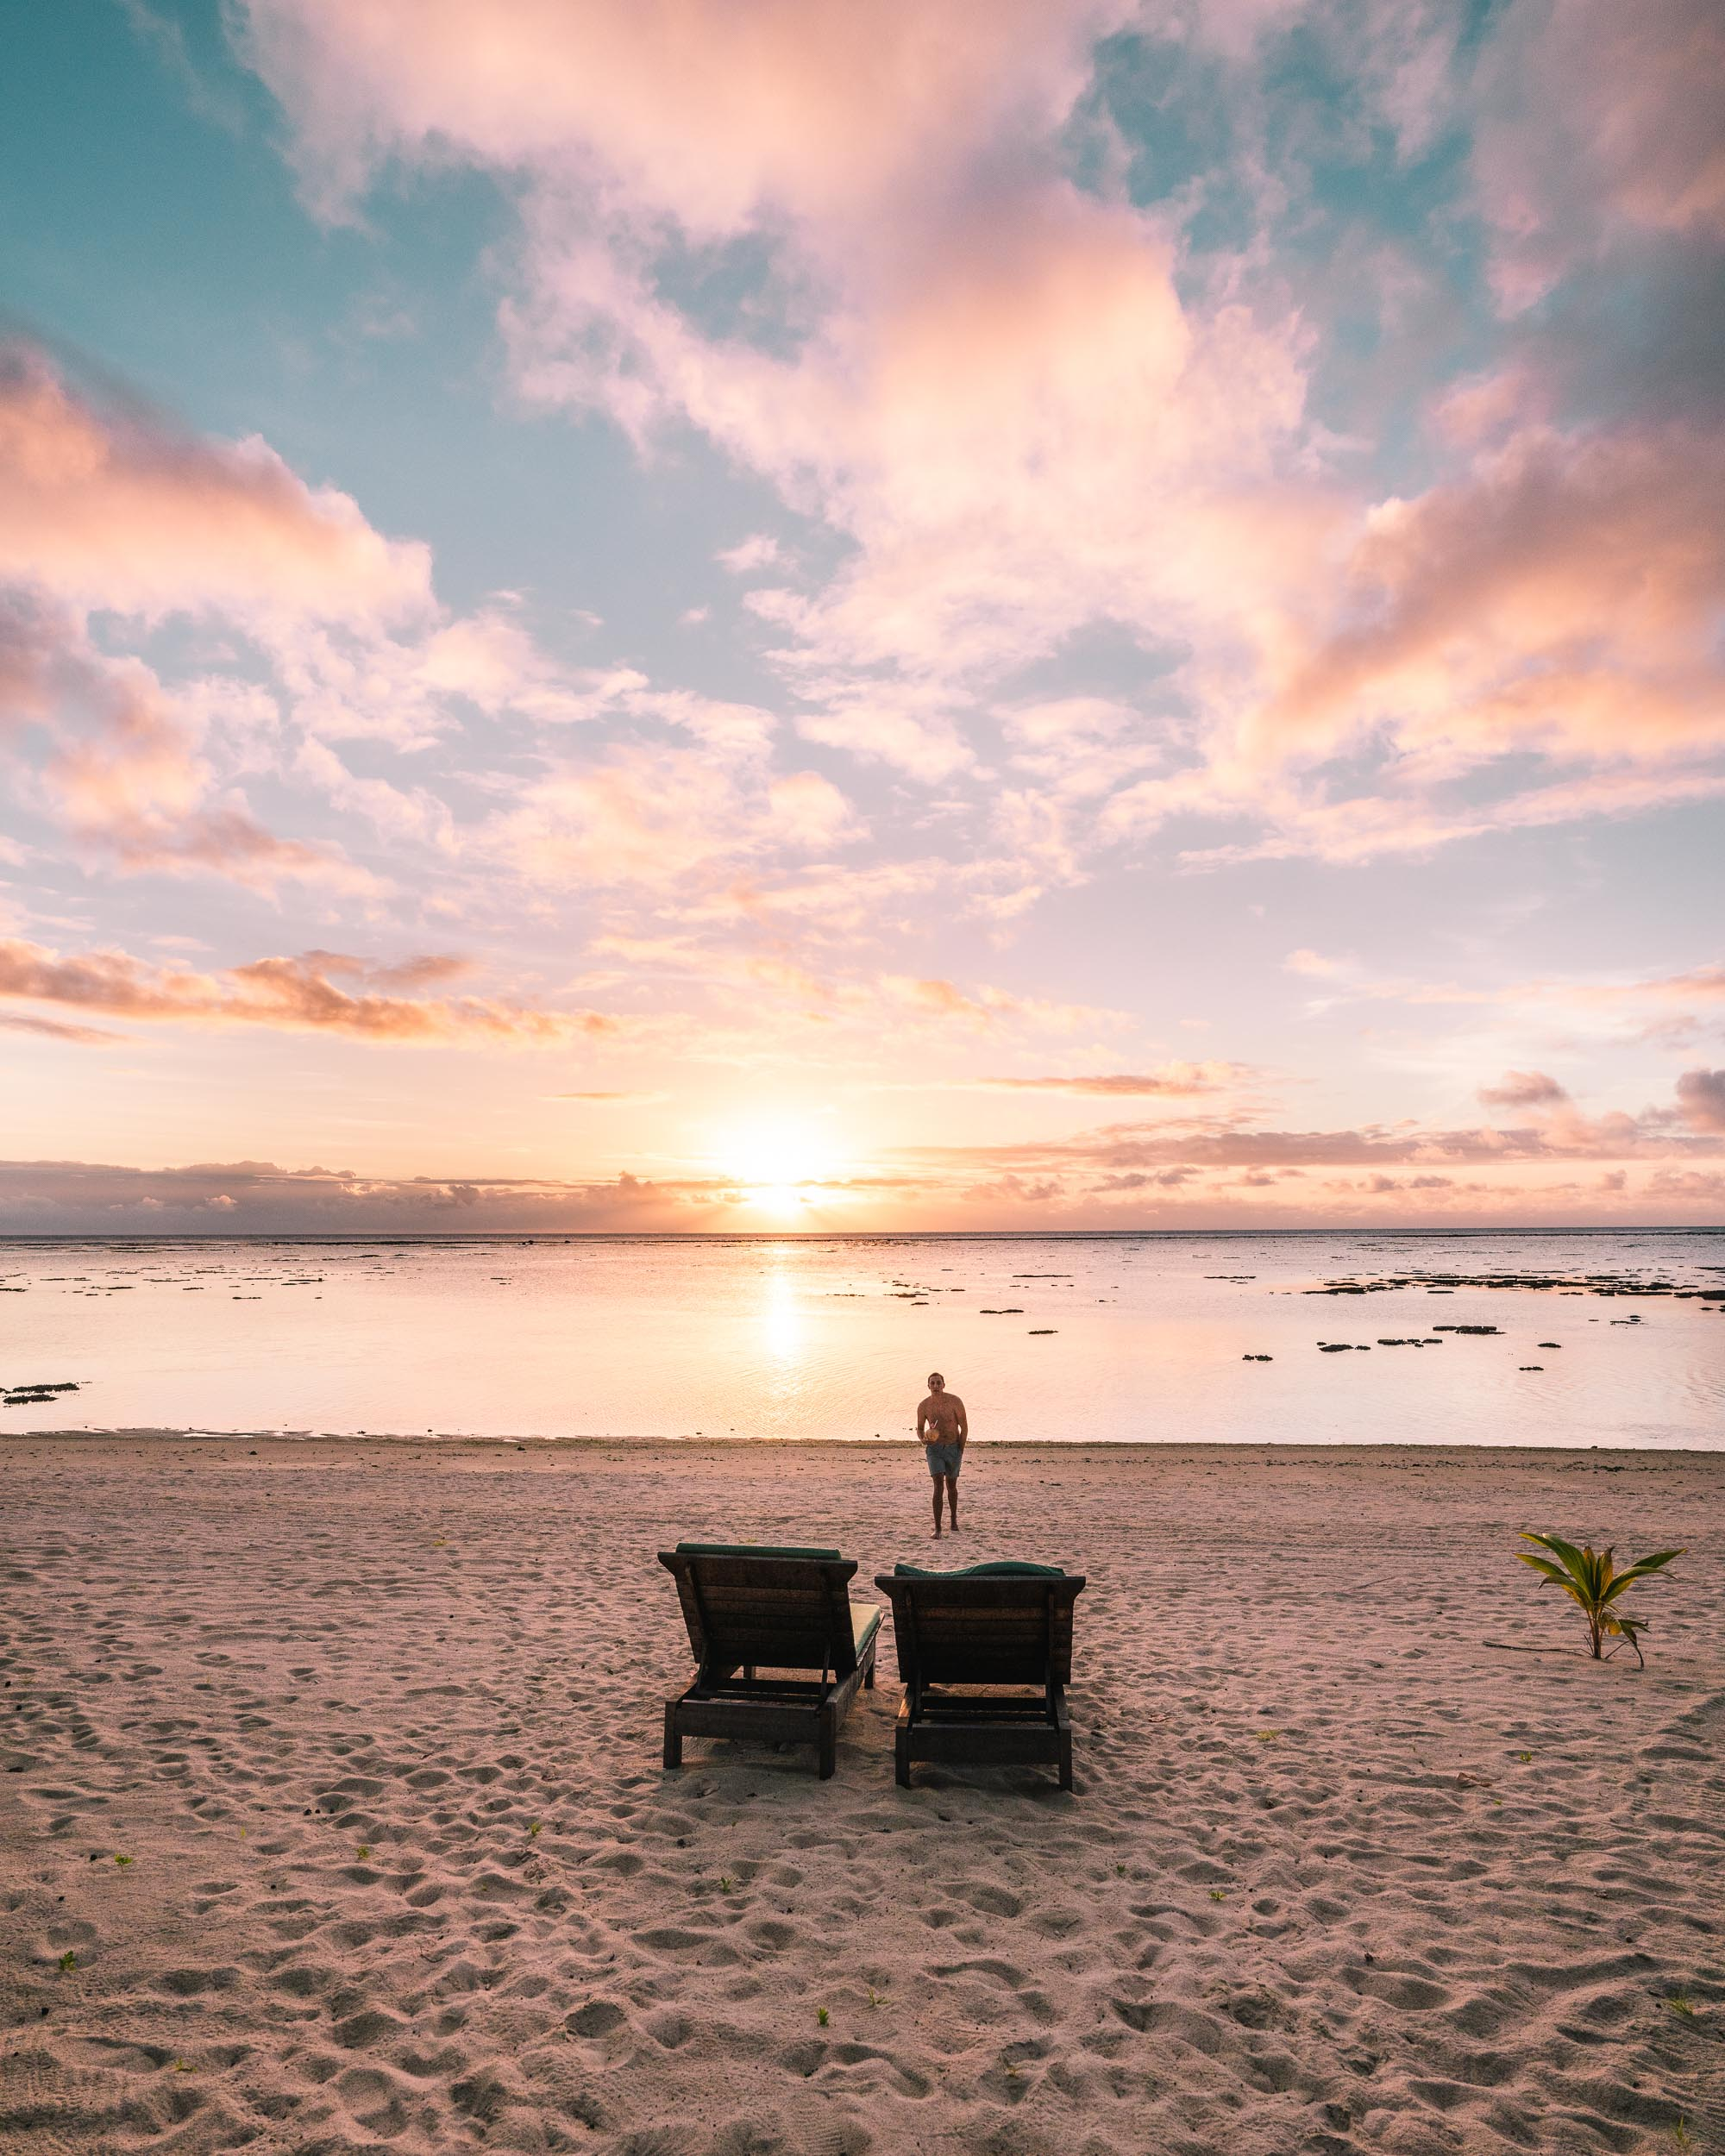 Sunset views from our jungle bungalow at Pacific Resort Aitutaki, Cook Islands